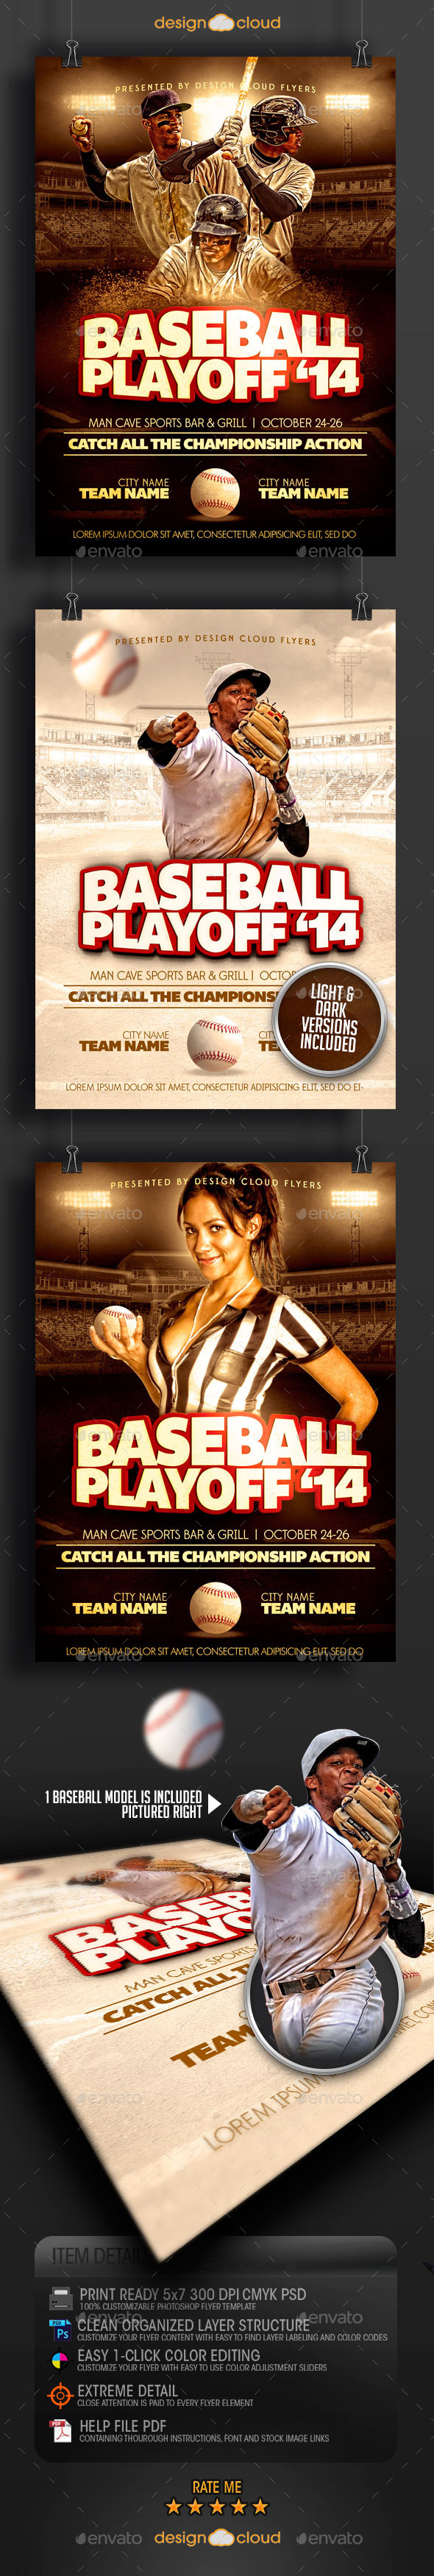 Baseball Playoff '14 Flyer Template - Sports Events